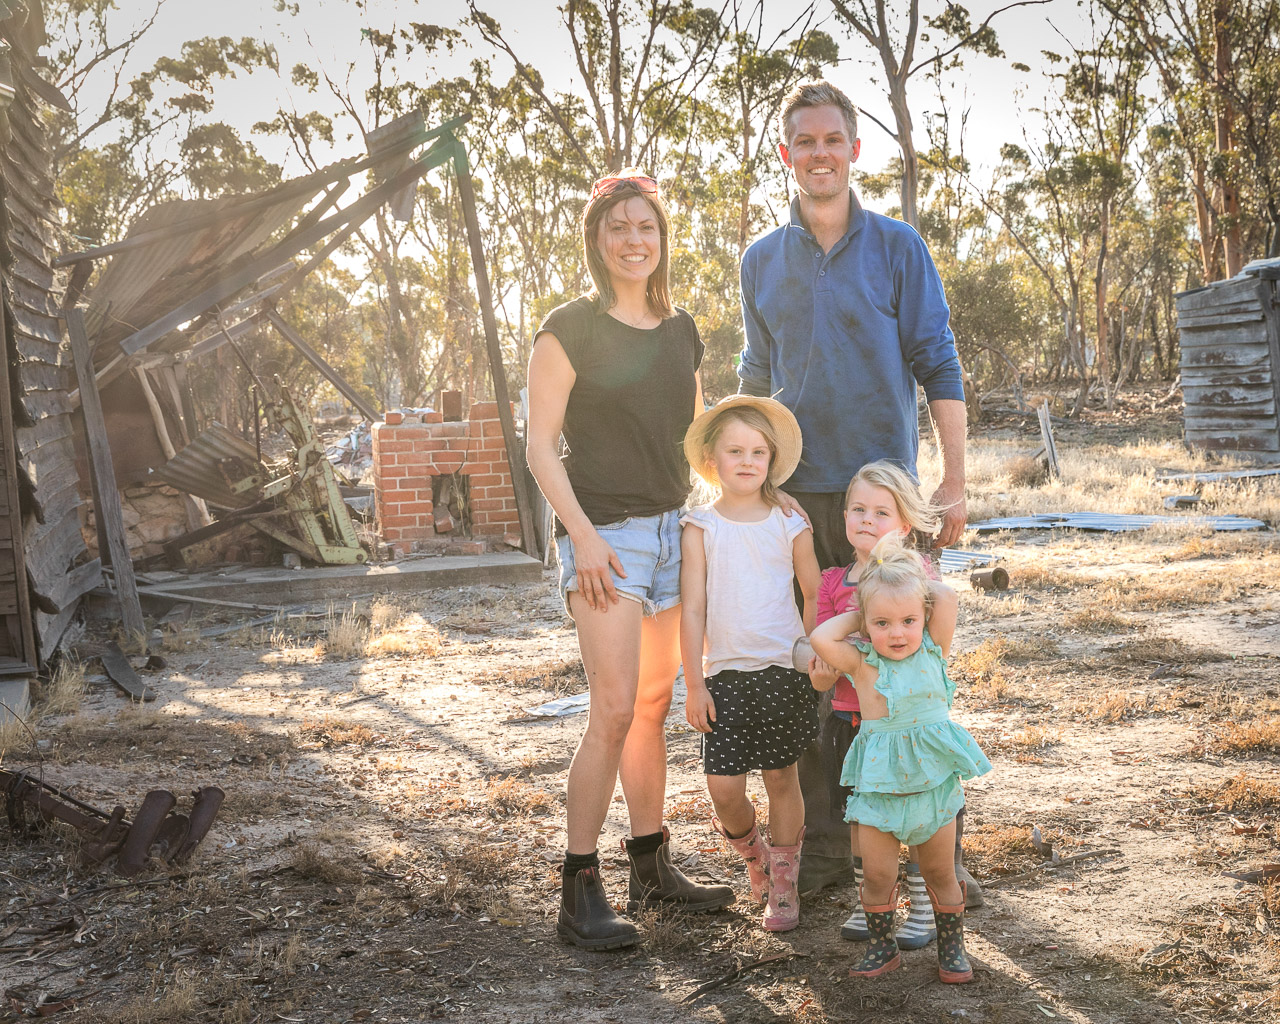 Family photo session in the wheatbelt on their own farm